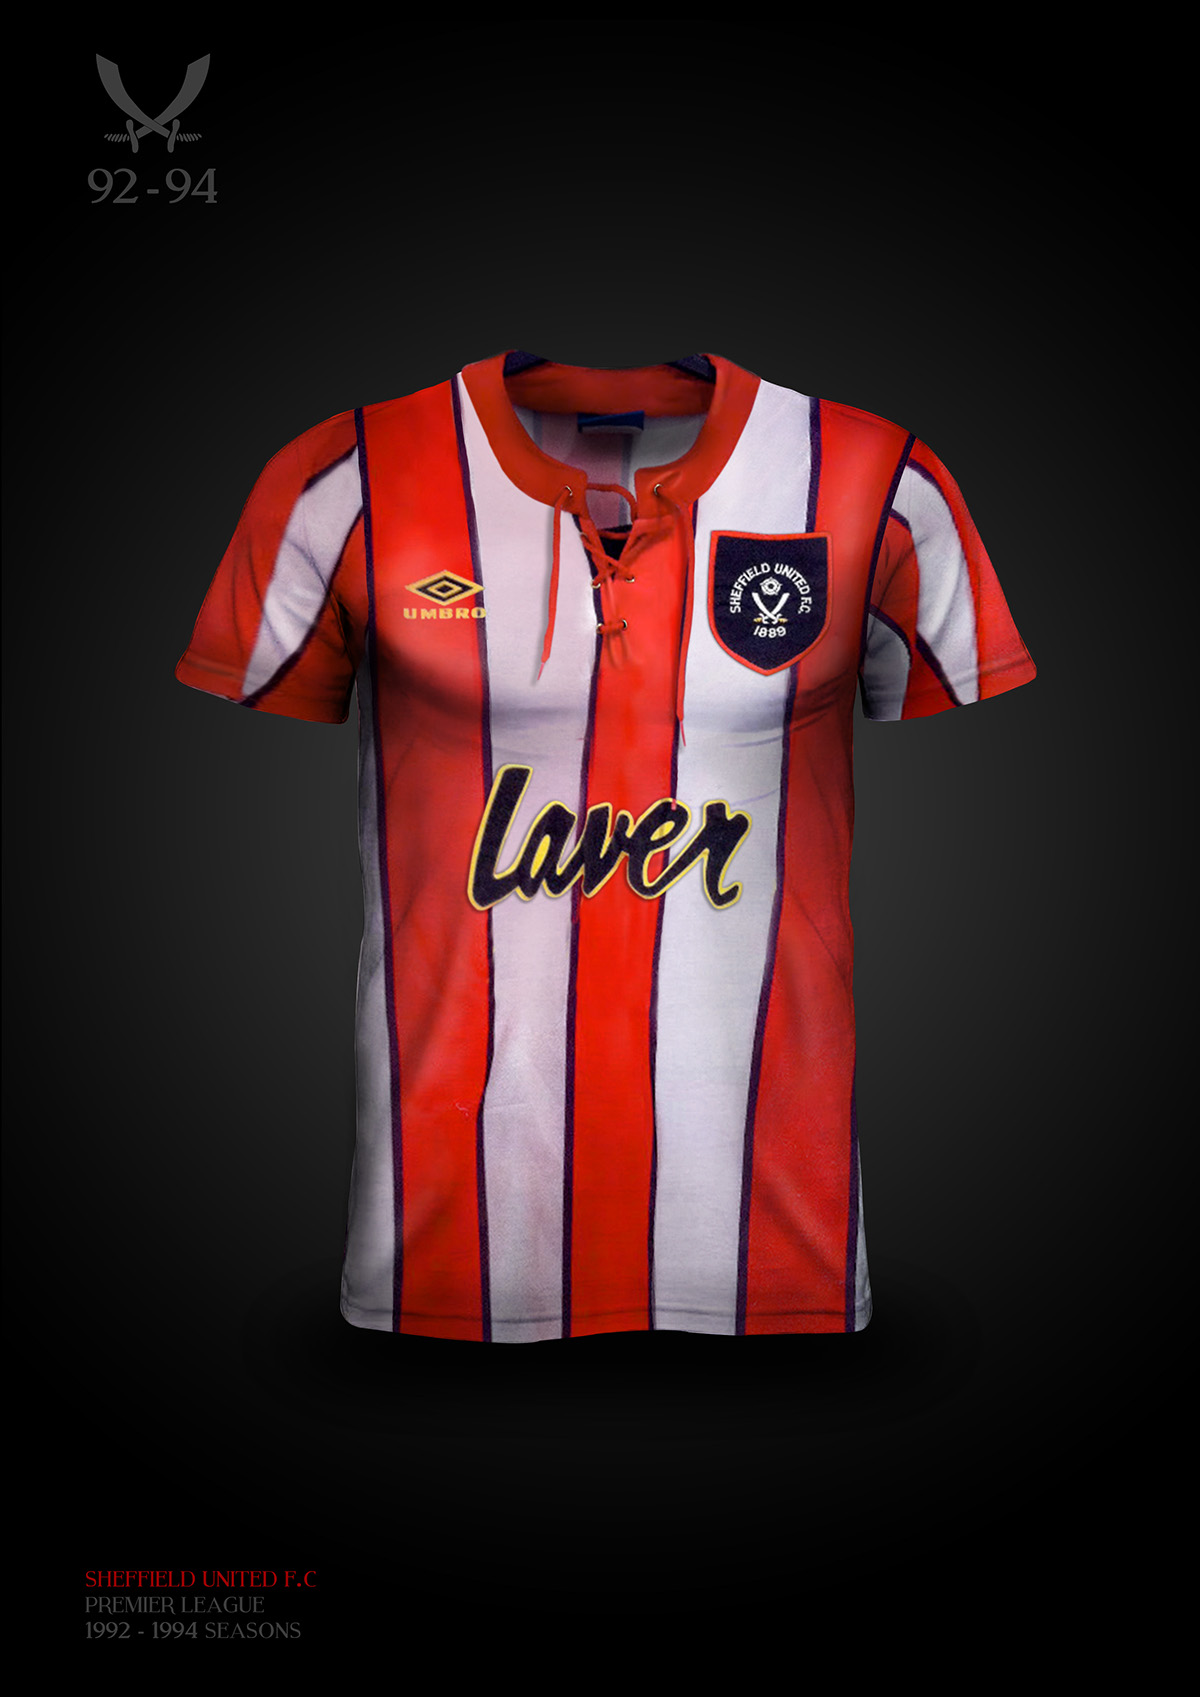 Sheffield United Vintage Shirts by Liam Proniewicz - SoccerBible. dbf6d879e